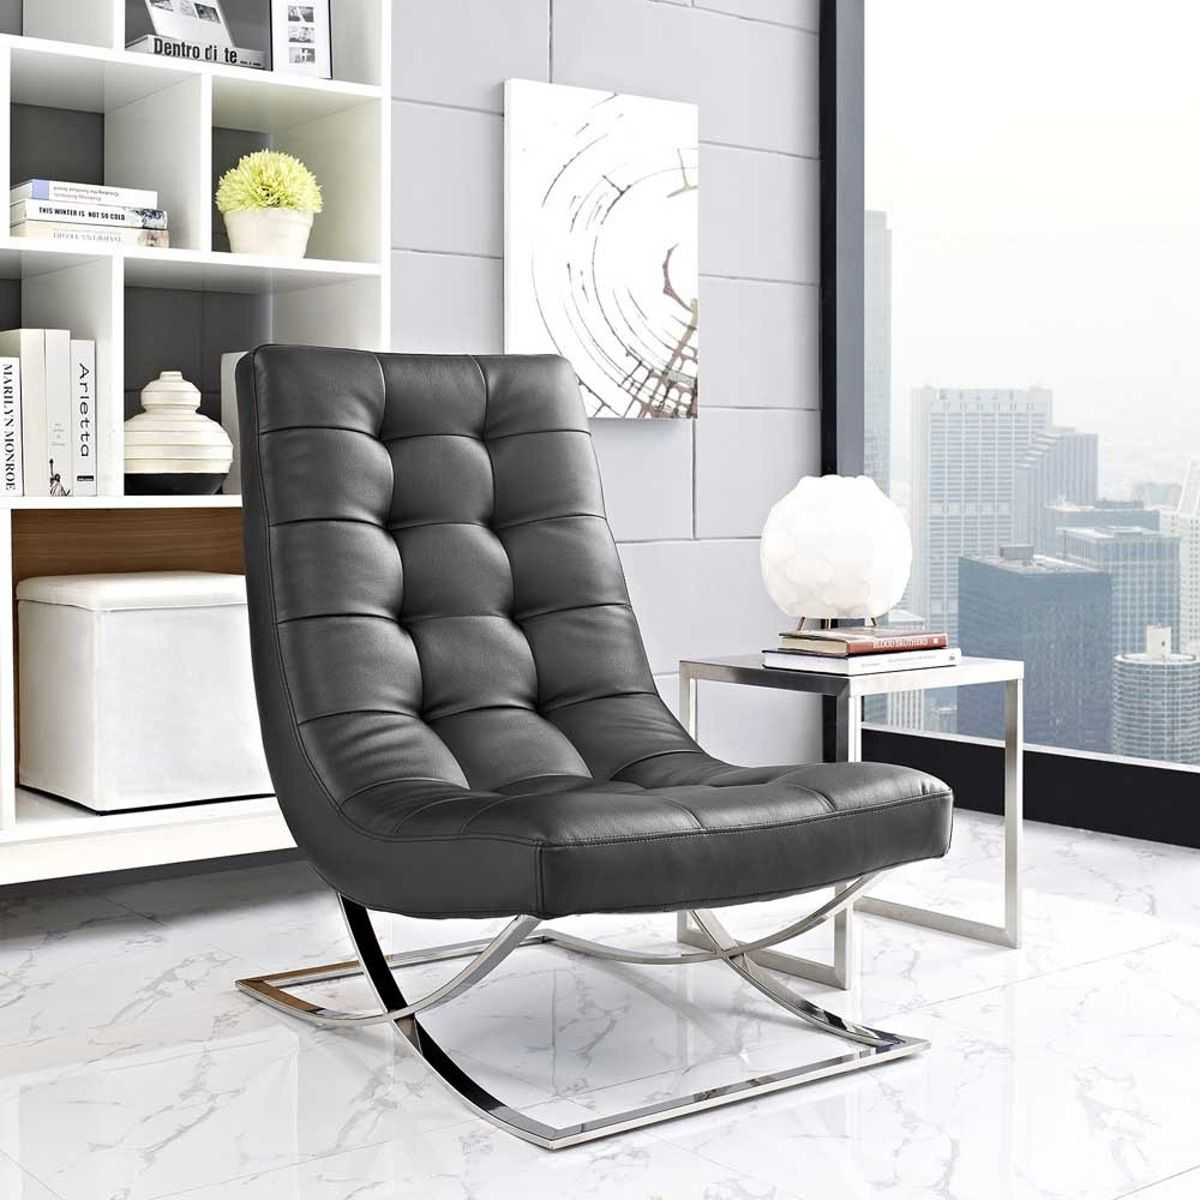 Modway Slope Upholstered Vinyl Lounge Chair - Black  Lounge chair